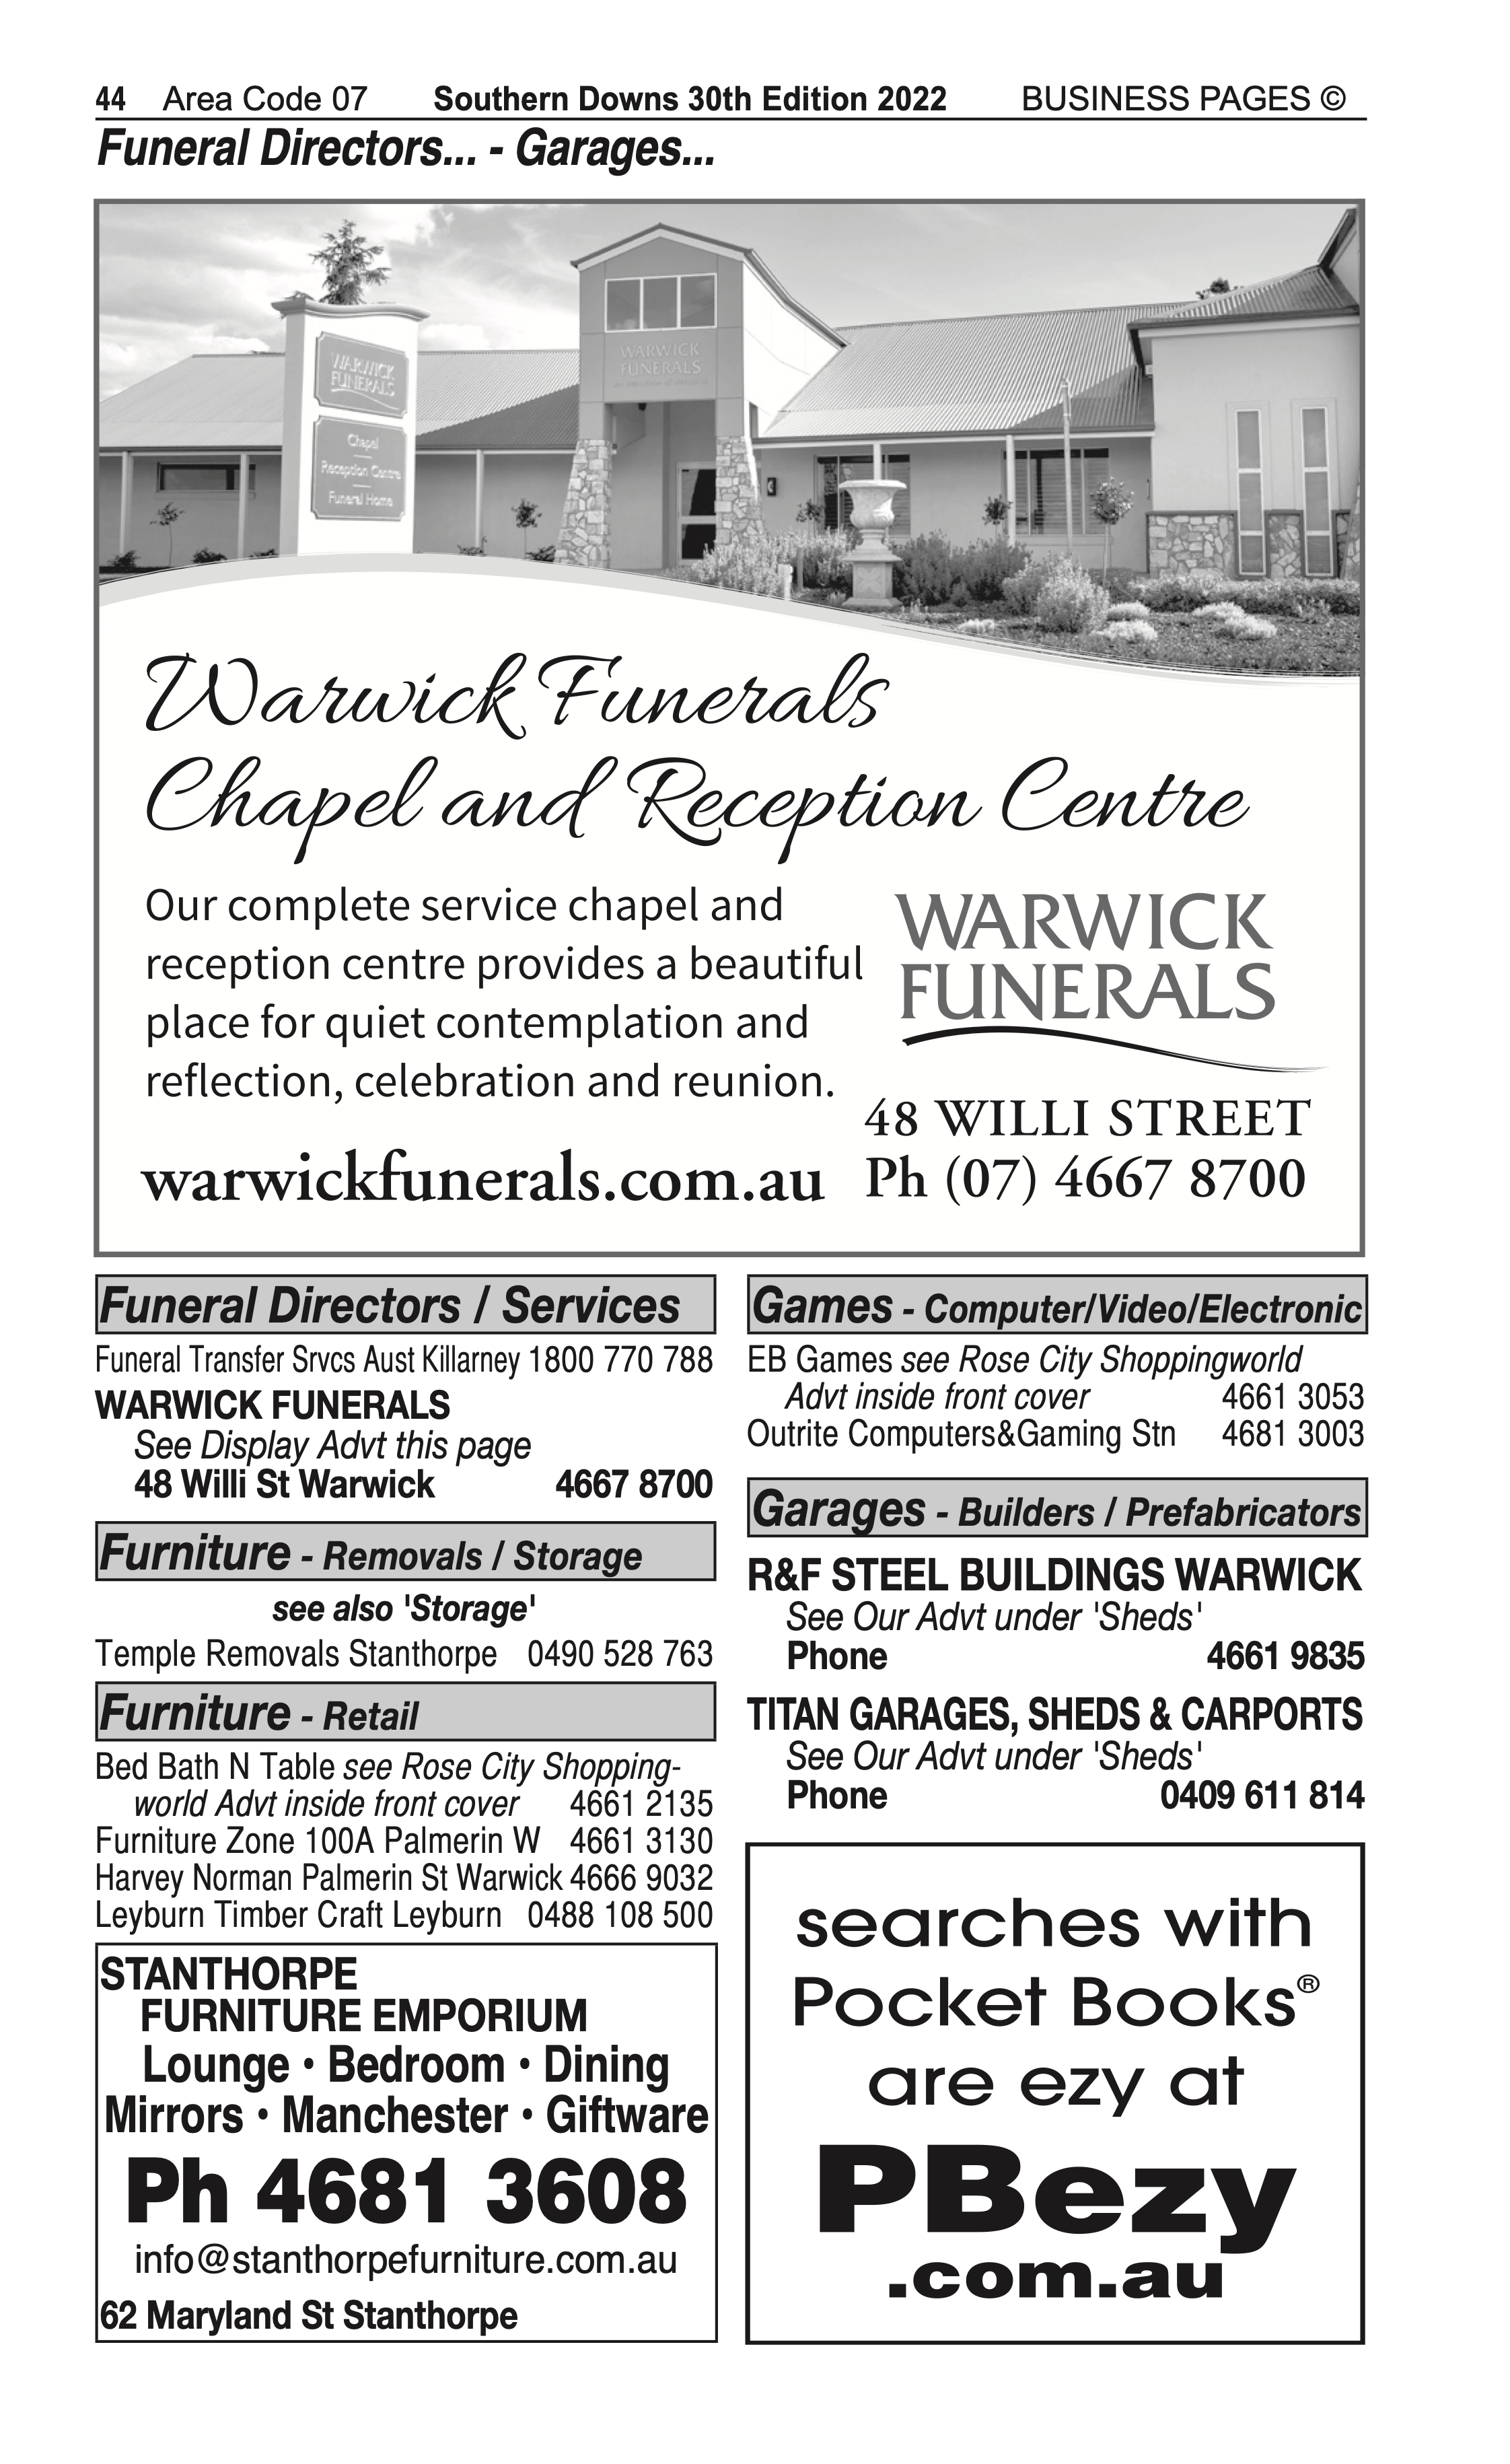 Mick Weier Concreting & Bobcatting in Wiyarra QLD - page 44